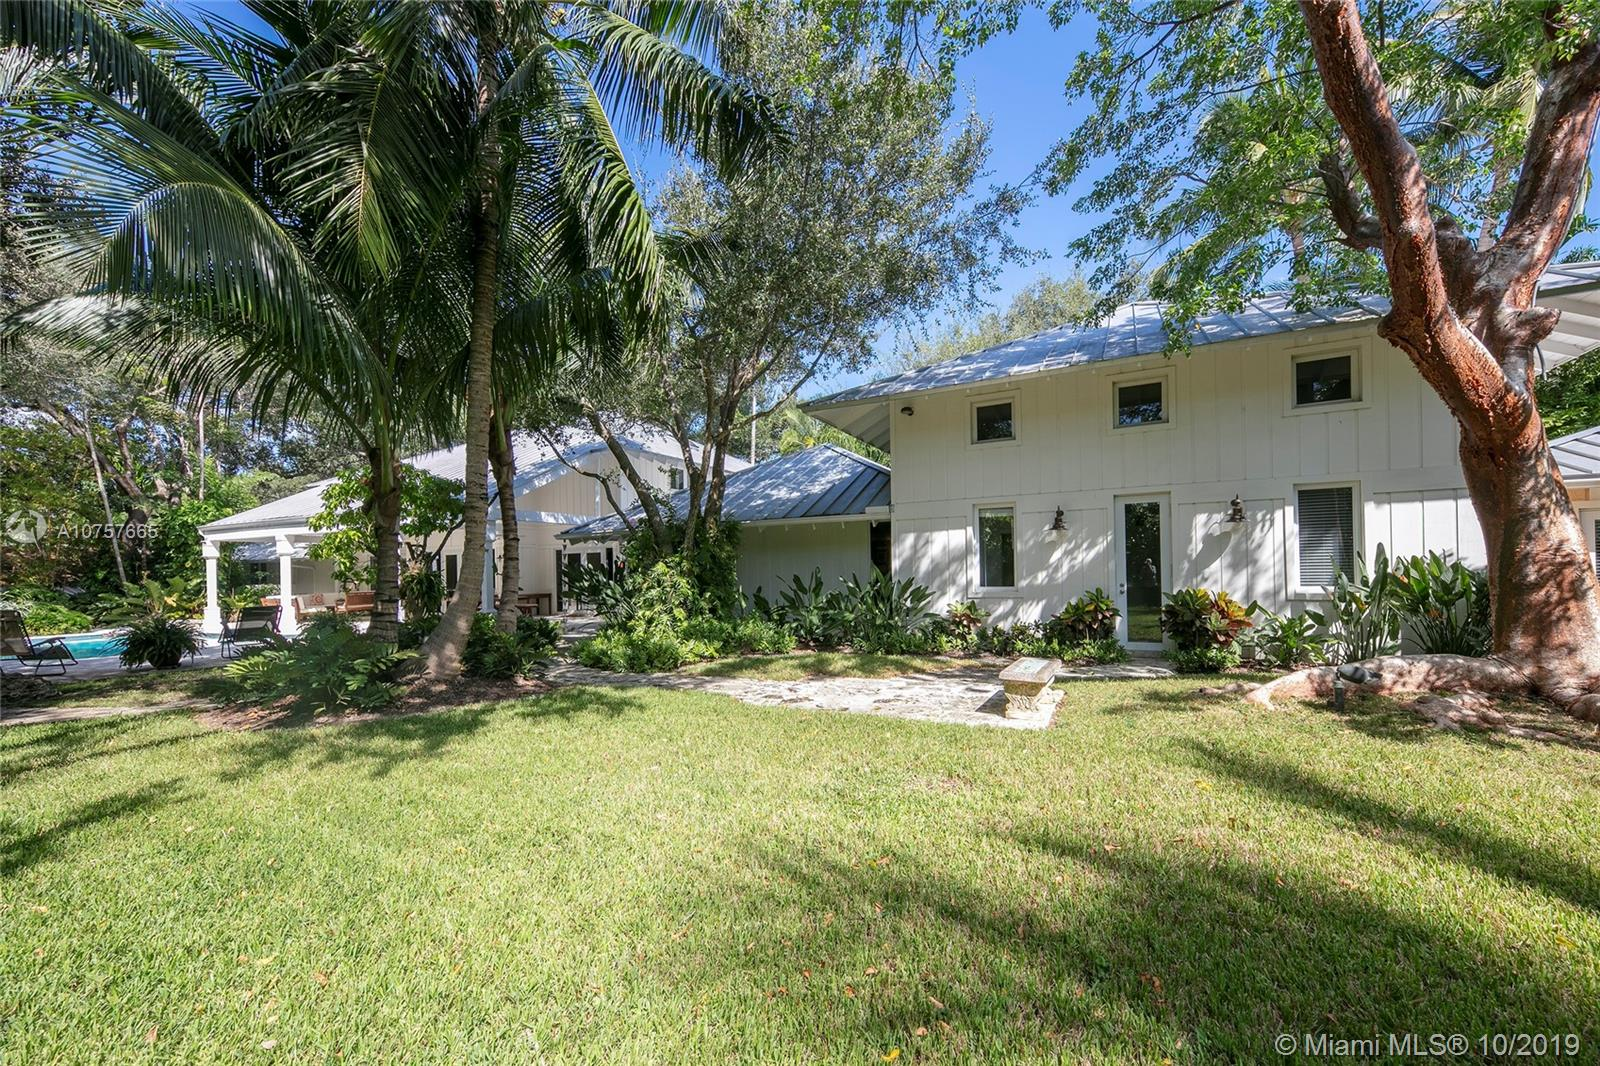 Gorgeous Florida Vernacular on an Oak, Gumbo Limbo, & fruit tree studded 37,462 sf lot in Ponce Davis trophy location cul de sac of only 3 homes. Lush landscape, verdant views make this home a daily retreat. Many updates in 2012/2014, Limestone & wood floors, impact windows/doors, chefs kitchen w/gas Wolf stove, espresso machine, wine cooler. Double height entry atrium lit by a skylight. Living, breakfast & family rms all open to large covered terrace, pool,yard. Coralina walkways to a chickee hut & N-S tennis court. Downstairs master wing open to the terrace, enjoys an office, his/hers walk ins & glamorous bath suite. Staff area & guest/in-law w/an exterior door. Gym loft, laundry/staff area. 2 upstairs Jack & Jills w/vaulted ceilings. 2 car garage can accommodate lifts. 3 guest prkg bays